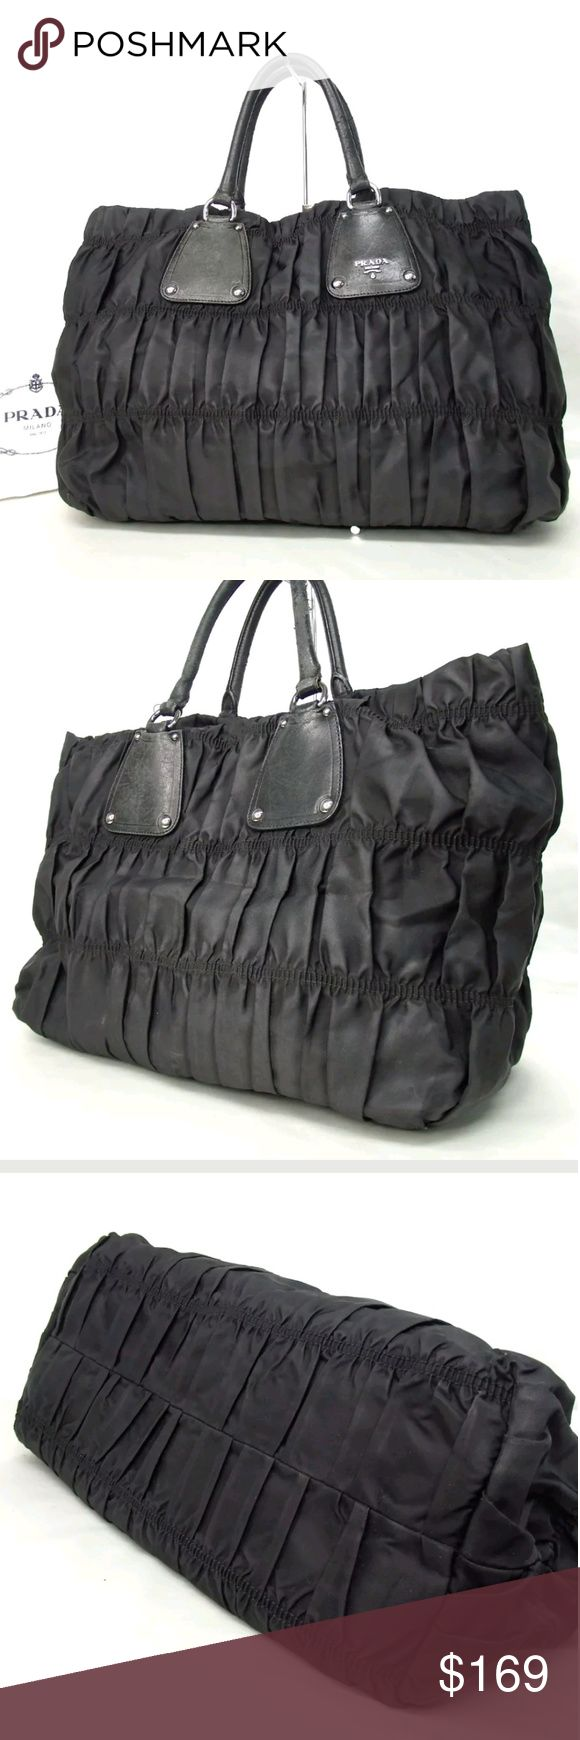 Prada Tessuto gaufre nylon tote This authentic Prada Tessuto Gaufre Tote is beautifully and intricately crafted in classic black and adorned with silver-tone hardware accents. Constructed in tessuto nylon, this bag features dual-rolled handles and trademark Prada logo. Ultra-spacious interior is lined with Prada's monogram fabric housing daily essentials. Super contemporary chic bag. In good used condition. Dust bag included. 8597 W45-38cm x H29cm x D16cm Handle:42cm W17.7' x H11.4' x D6.3'…